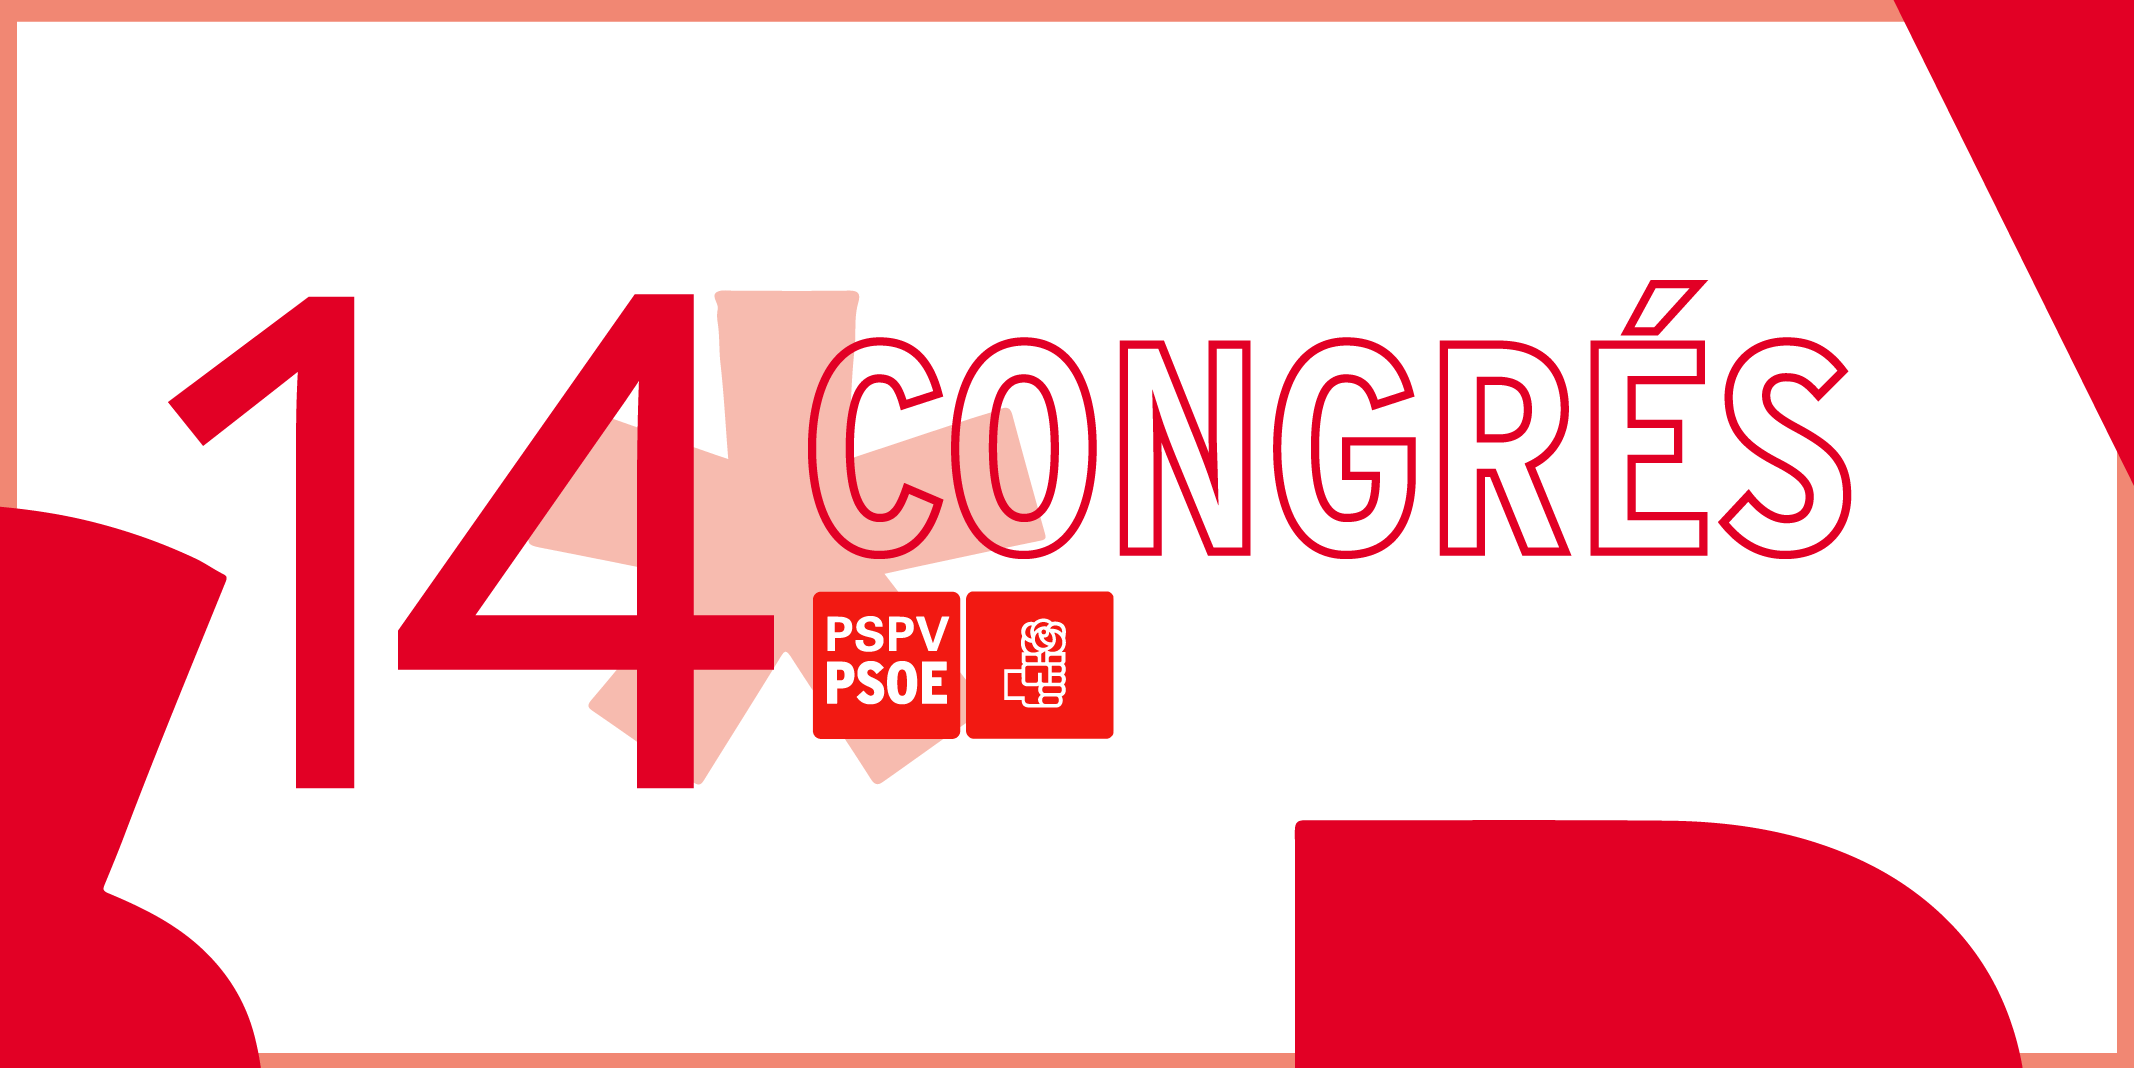 You are currently viewing 🌹 14 Congrés PSPV-PSOE   Clausura